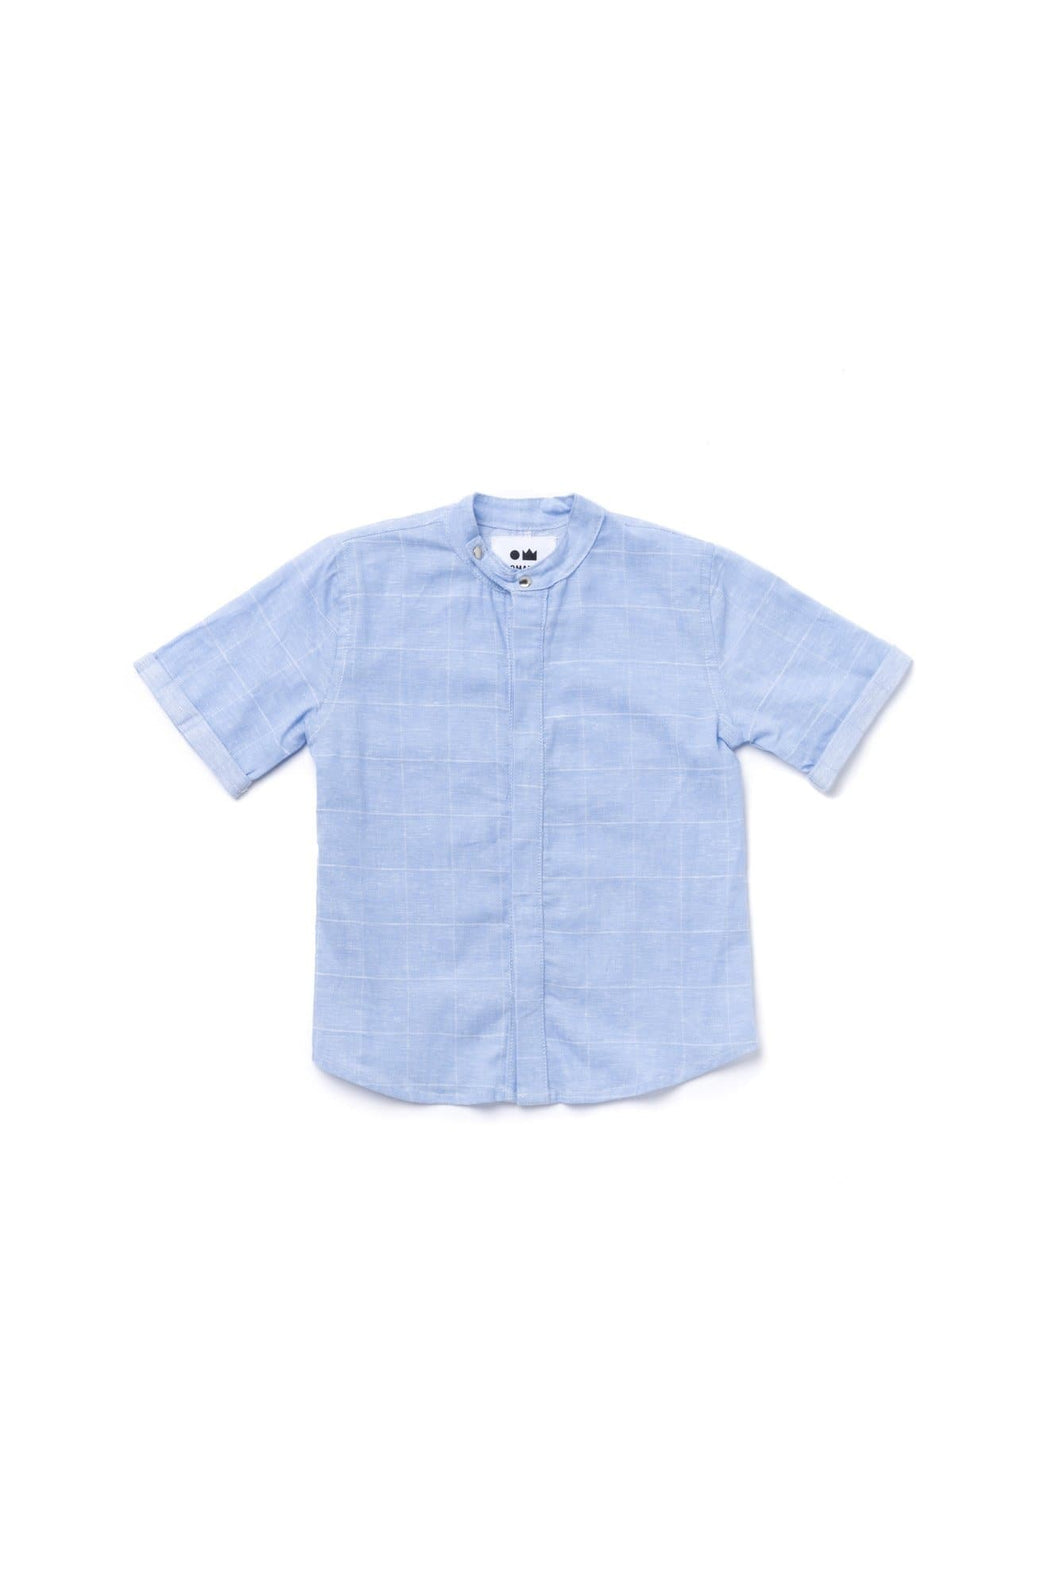 OMAMImini Chambray Button Down Shirt - Windowpane Blue - WildLittleFawns